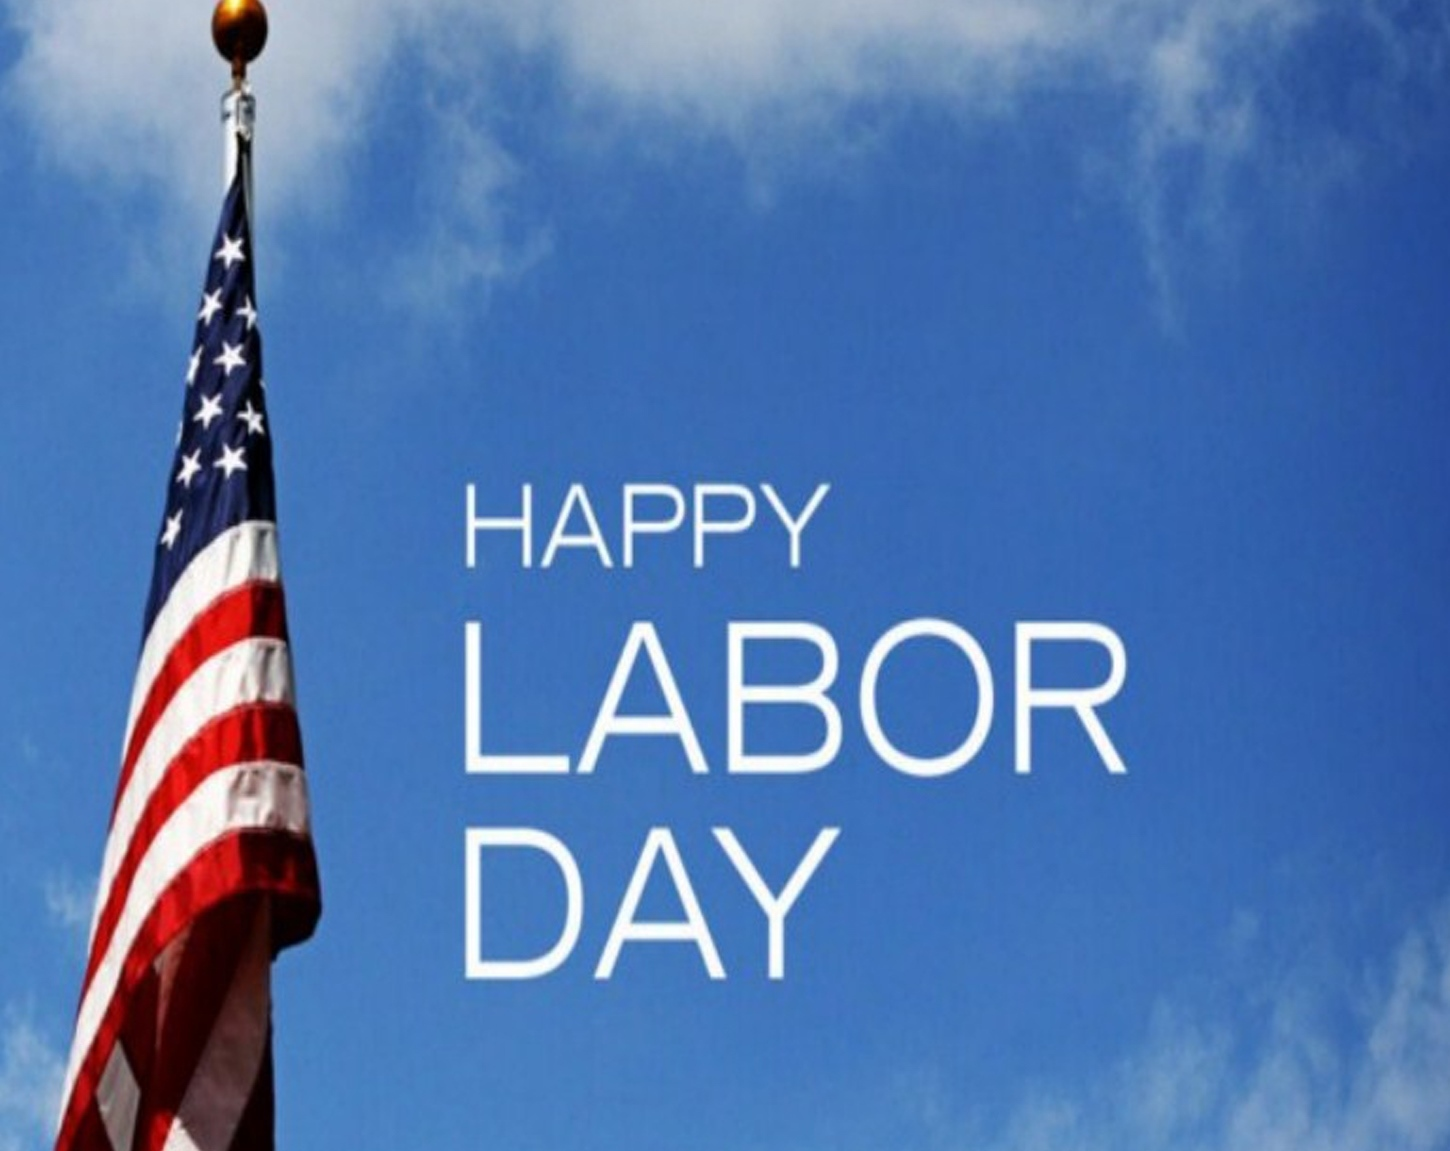 Happy labor day wishes labor day 2017 wishes greetings sms labor day 2017 greetings kristyandbryce Image collections